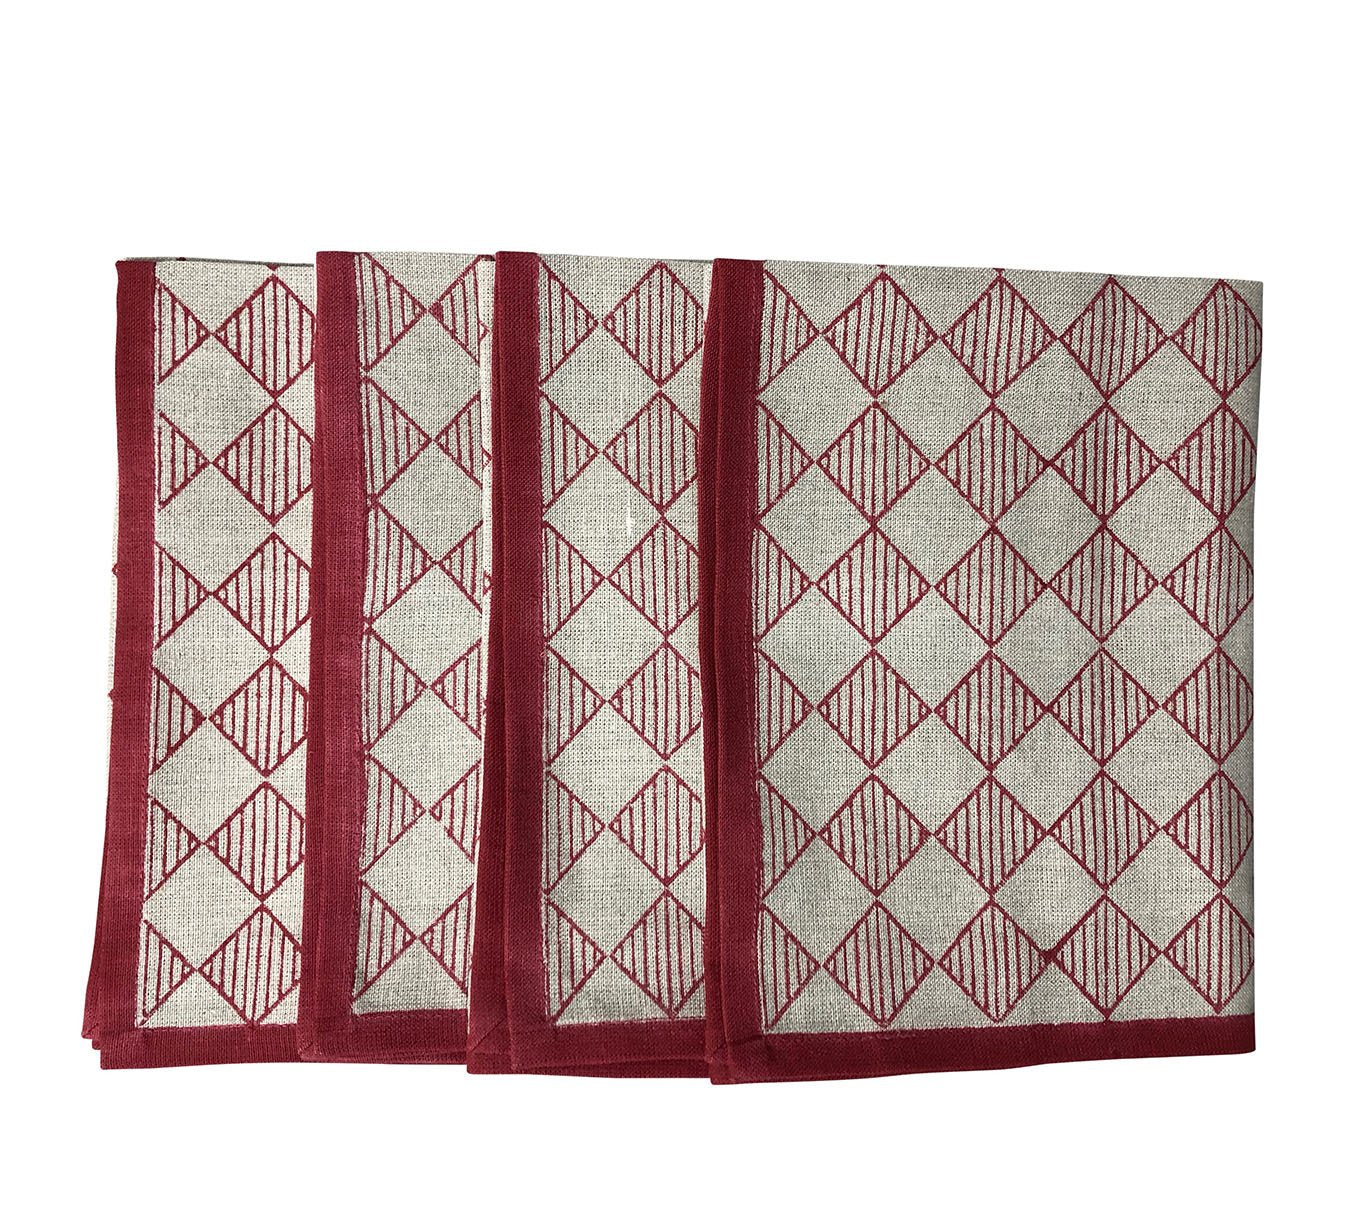 Napkin - Chequers - Red